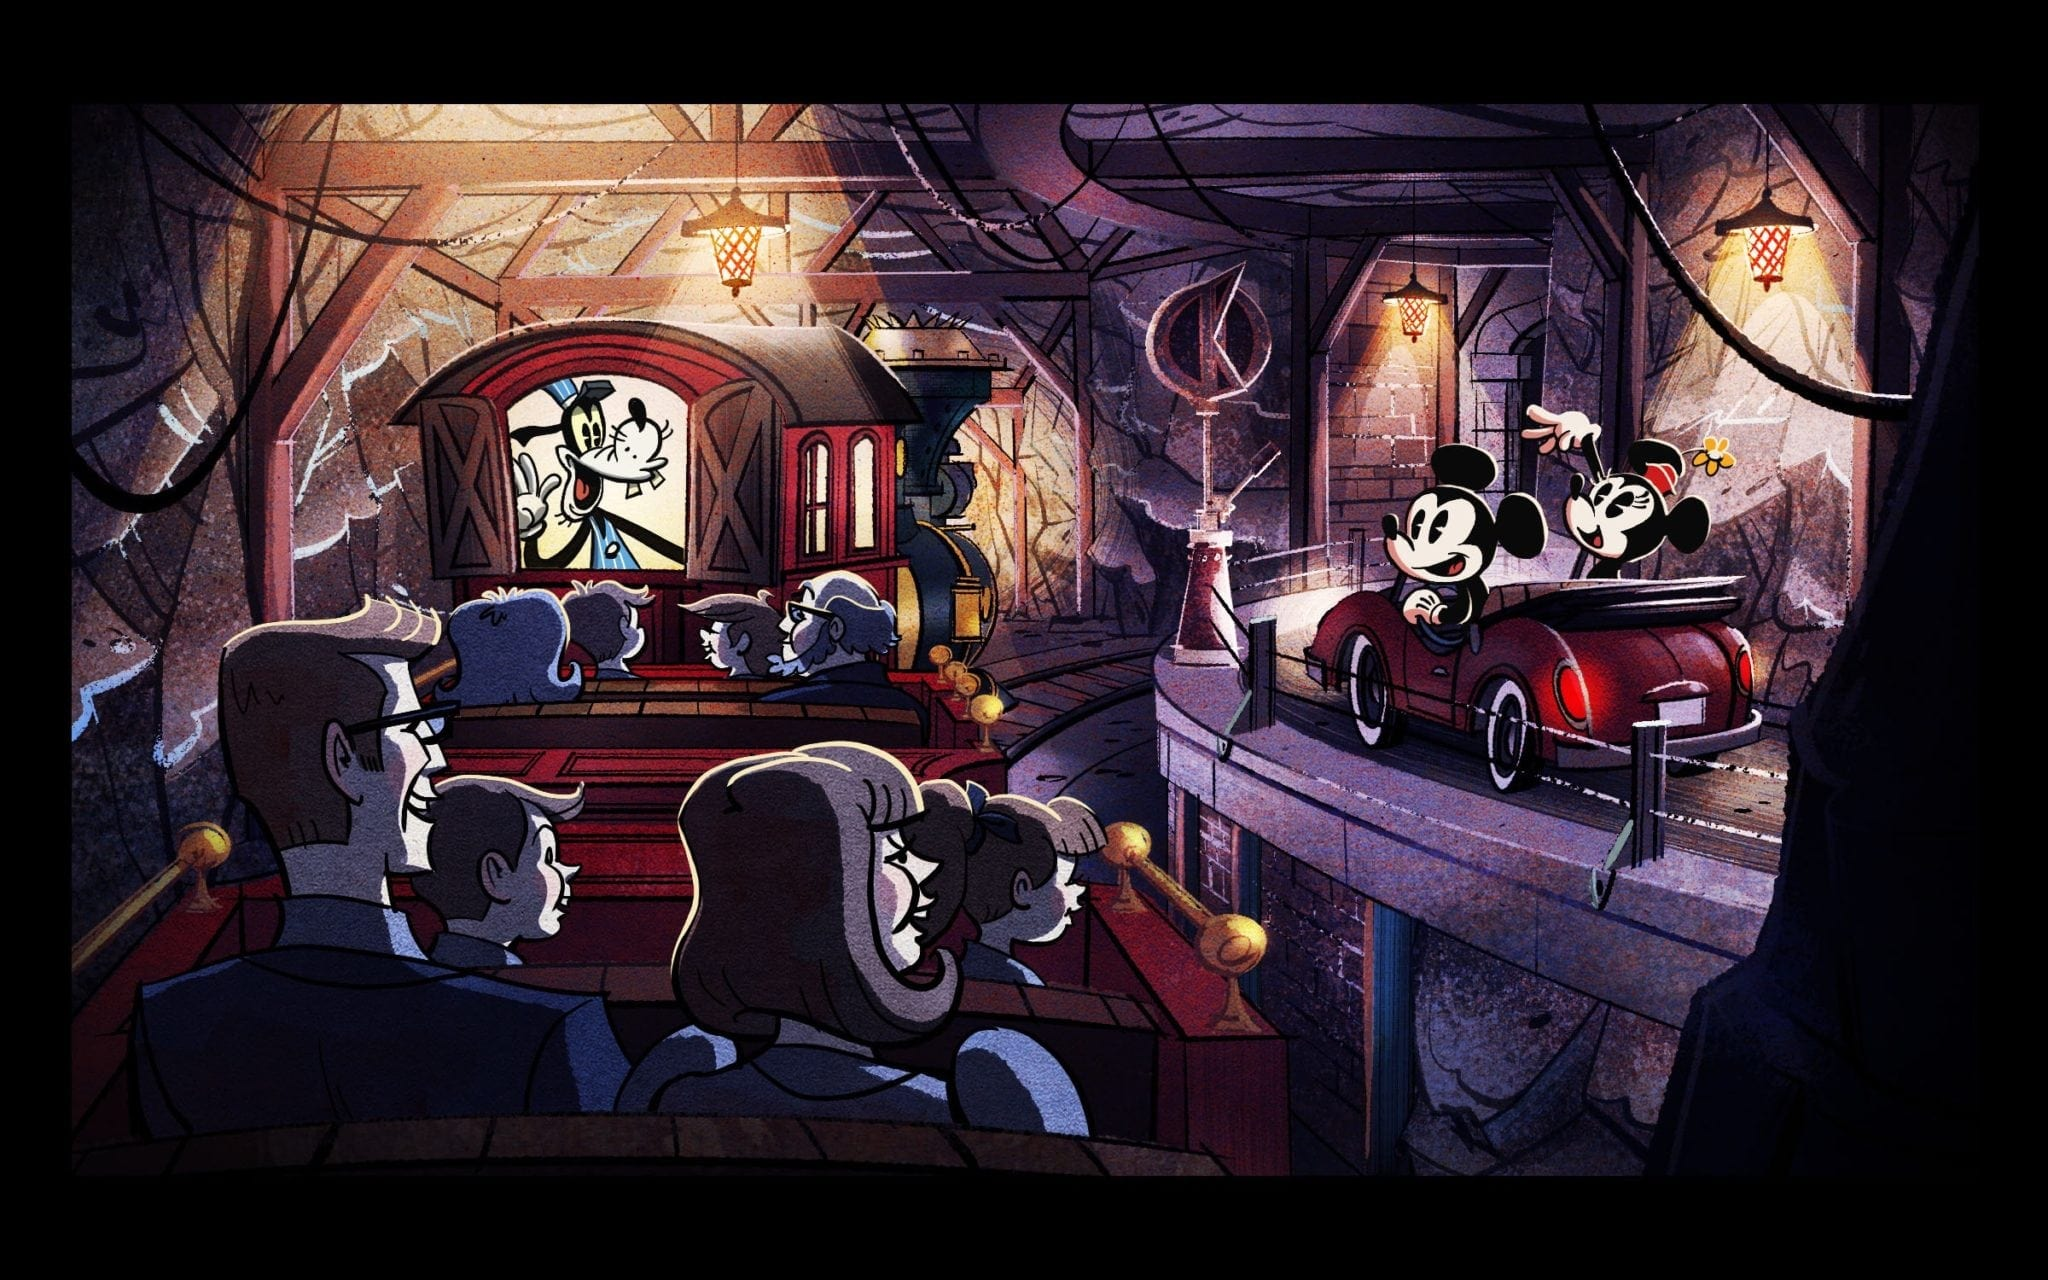 New Image Unveiled for Mickey & Minnie's Runaway Railway